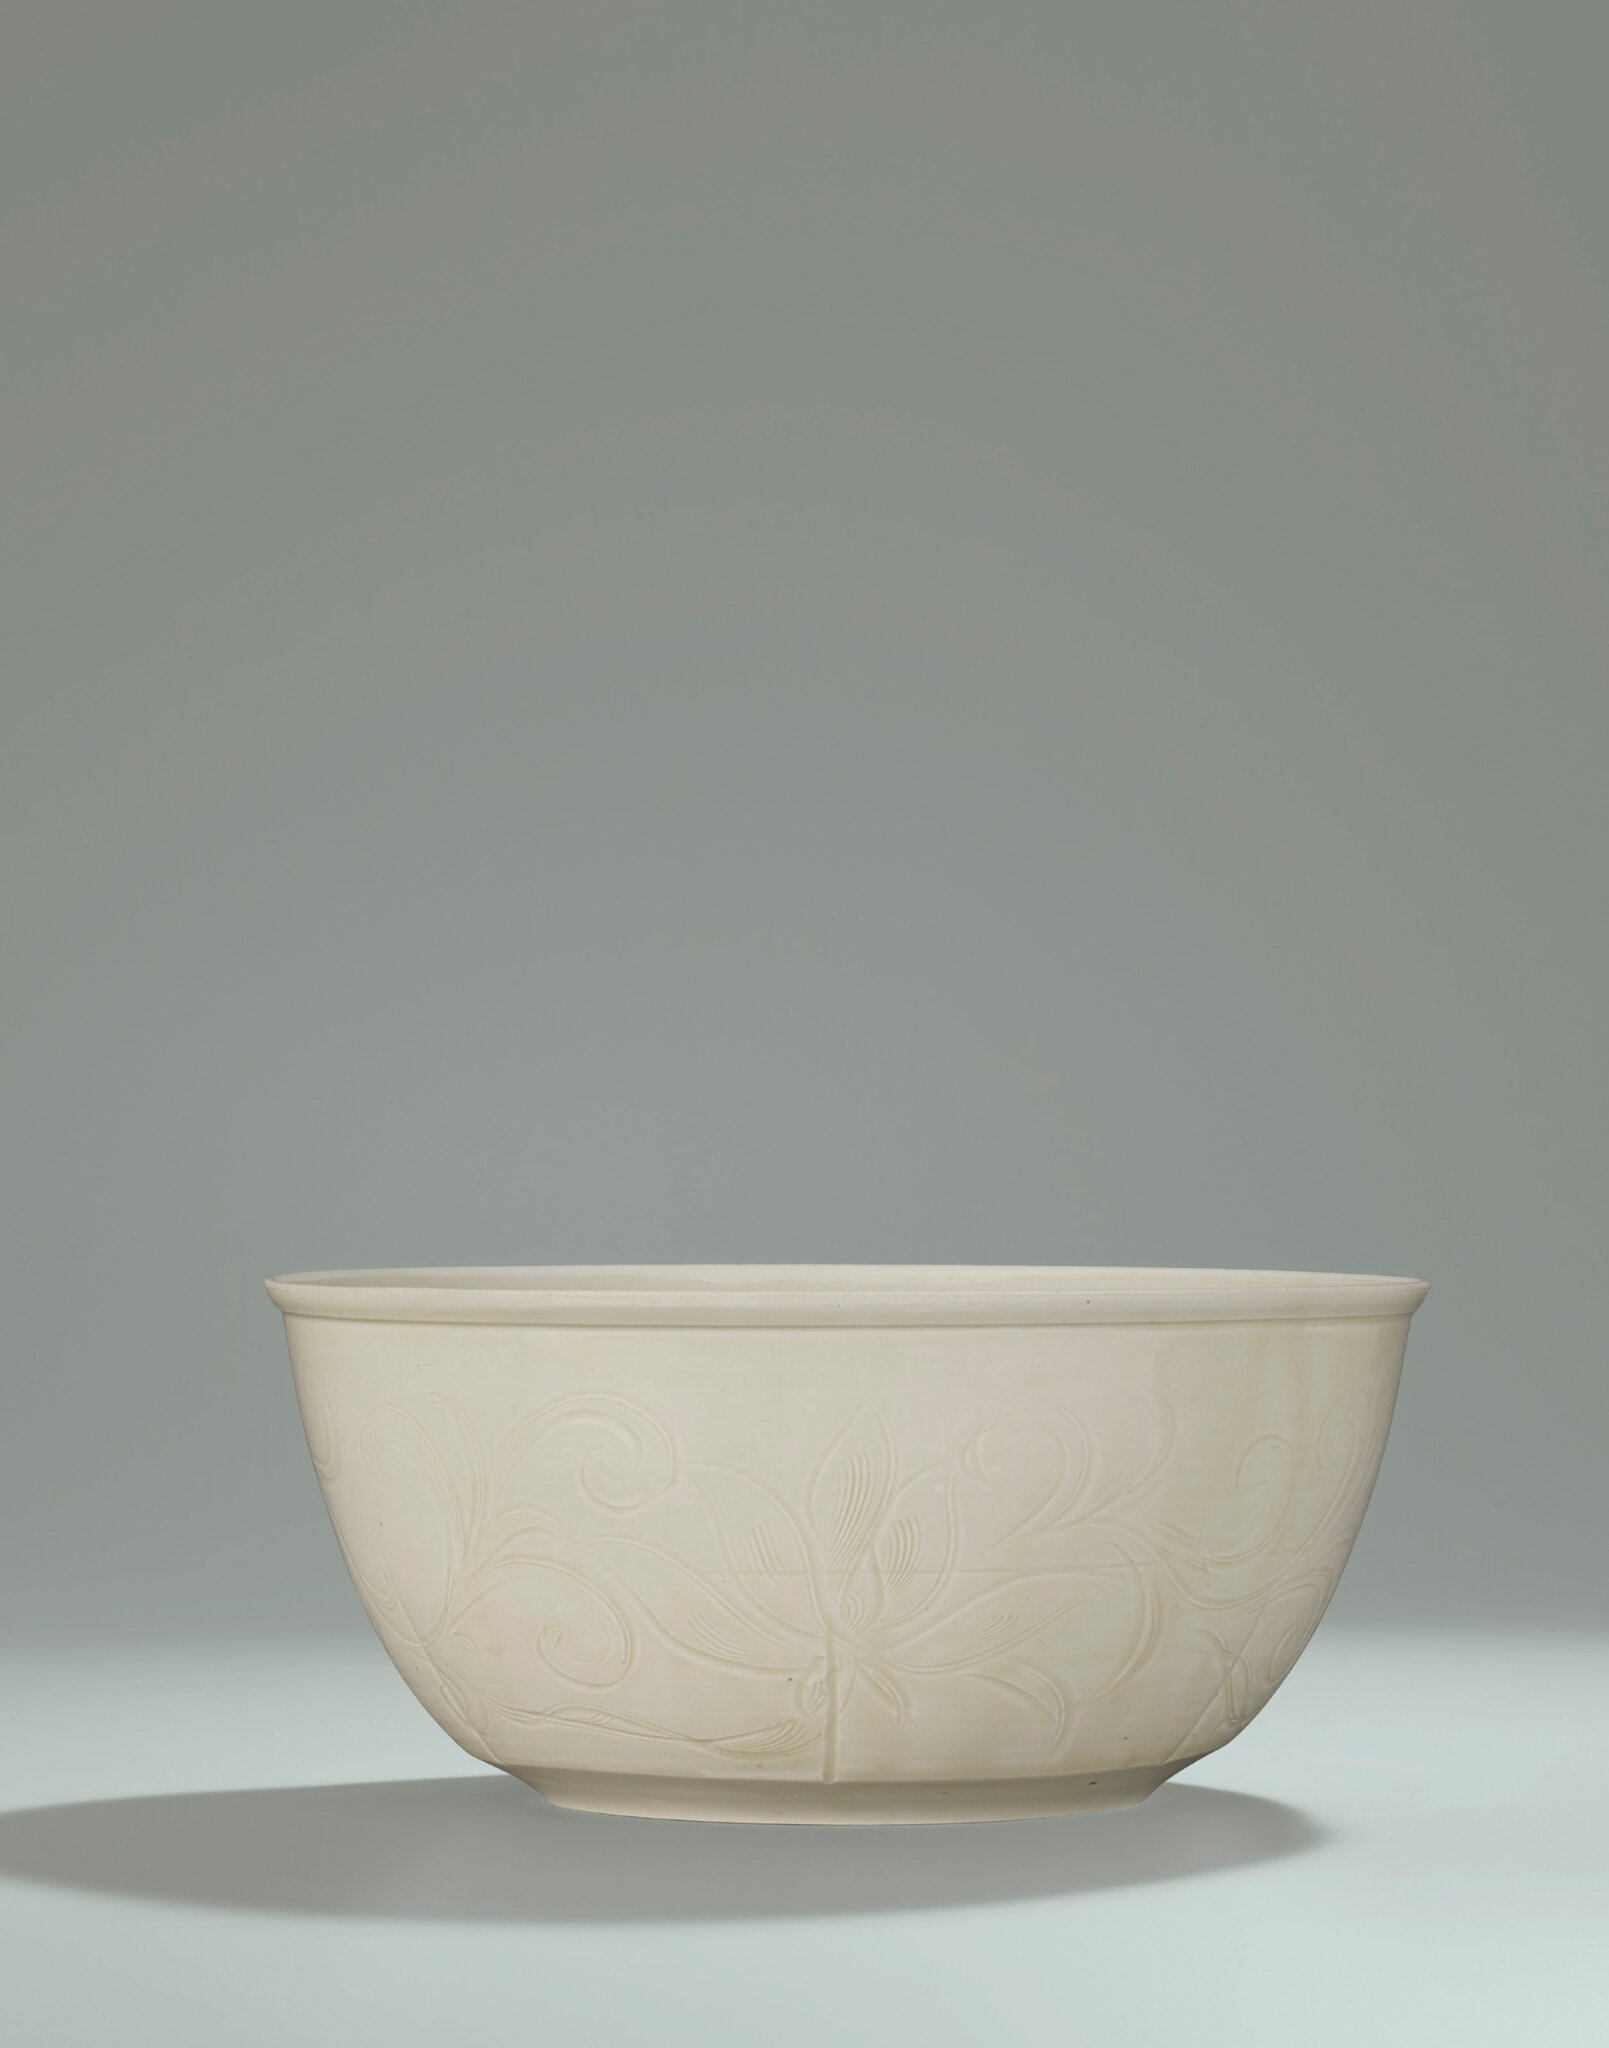 2014_HGK_03323_3212_000(a_very_rare_and_superbly_carved_large_ding_bowl_northern_song_dynasty)